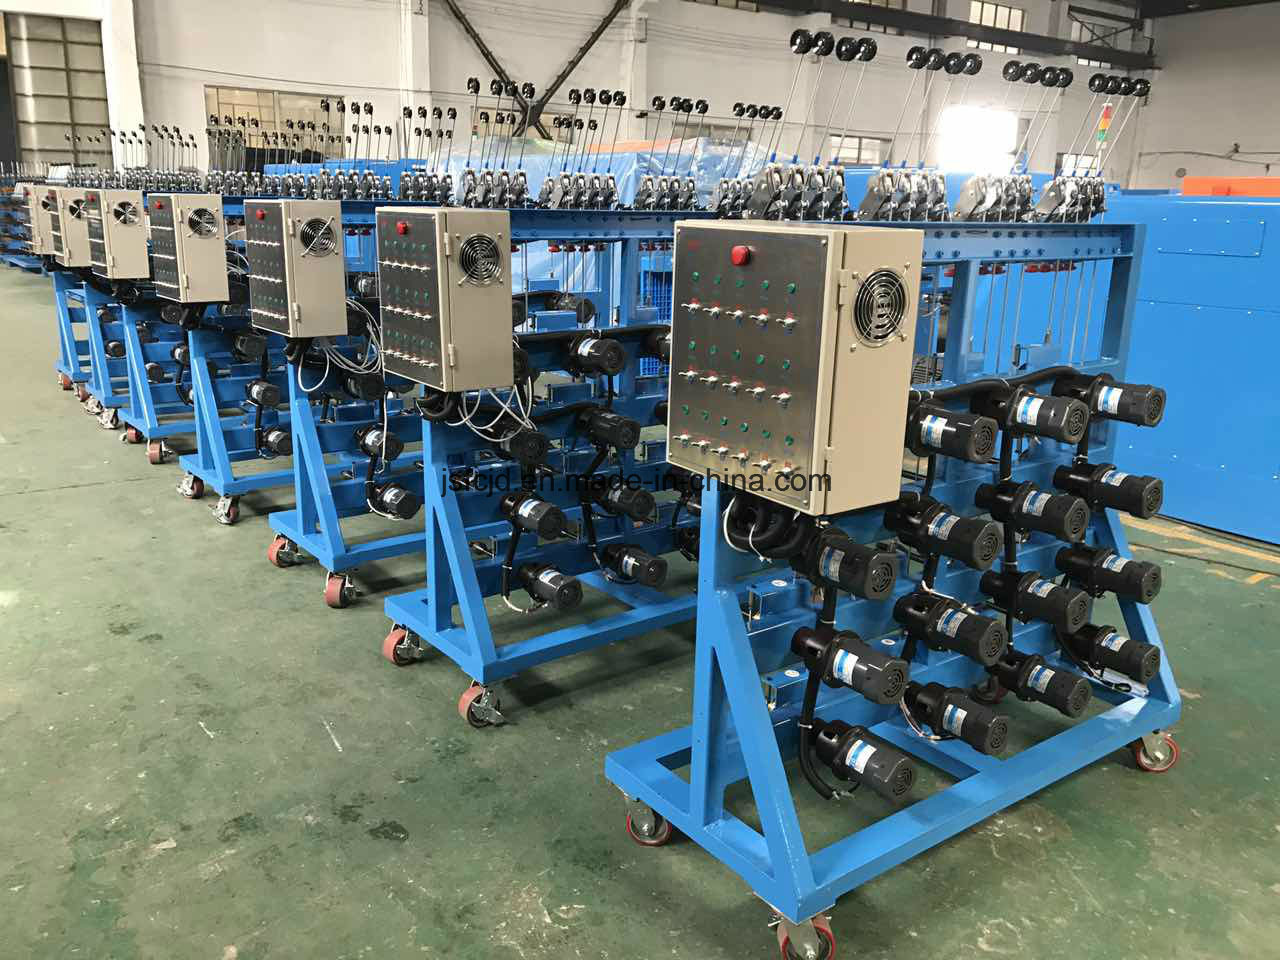 Active Motor Drived Copper Wire Pay-off Rack or Machine (FC-180) 250mm Bobbin